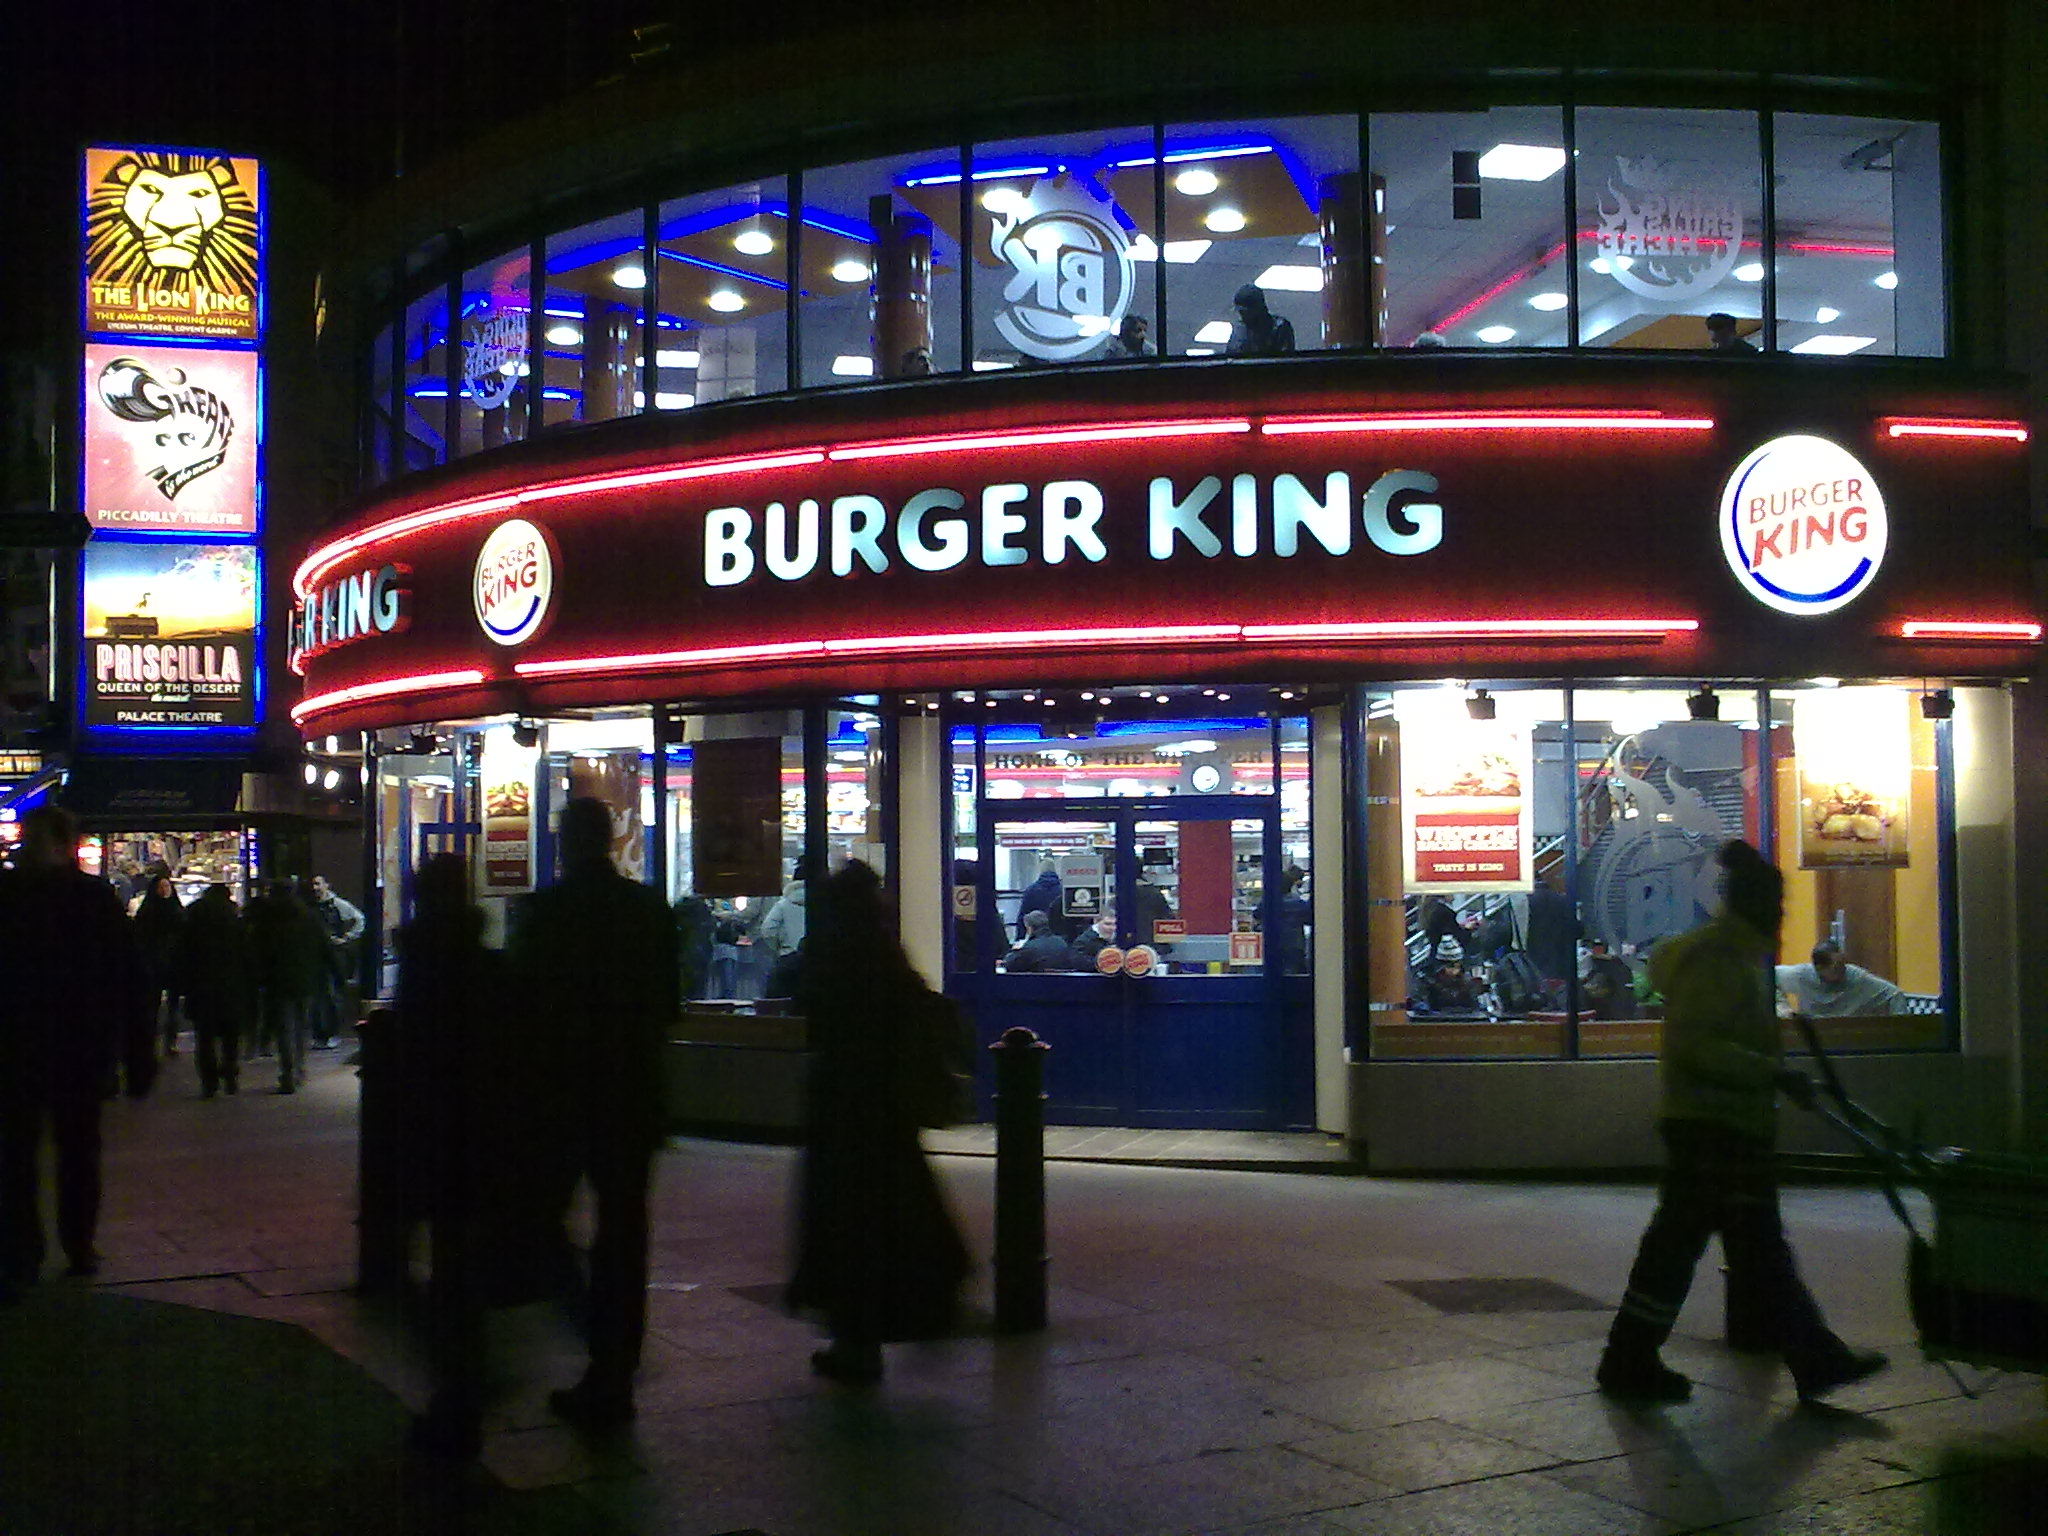 File burger king interior cork ireland 2012 jpg wikimedia commons - I Tried Breakfast Sandwiches From Burger King Mcdonald S And Wendy S Here S Who Does It Best Worldnews Com